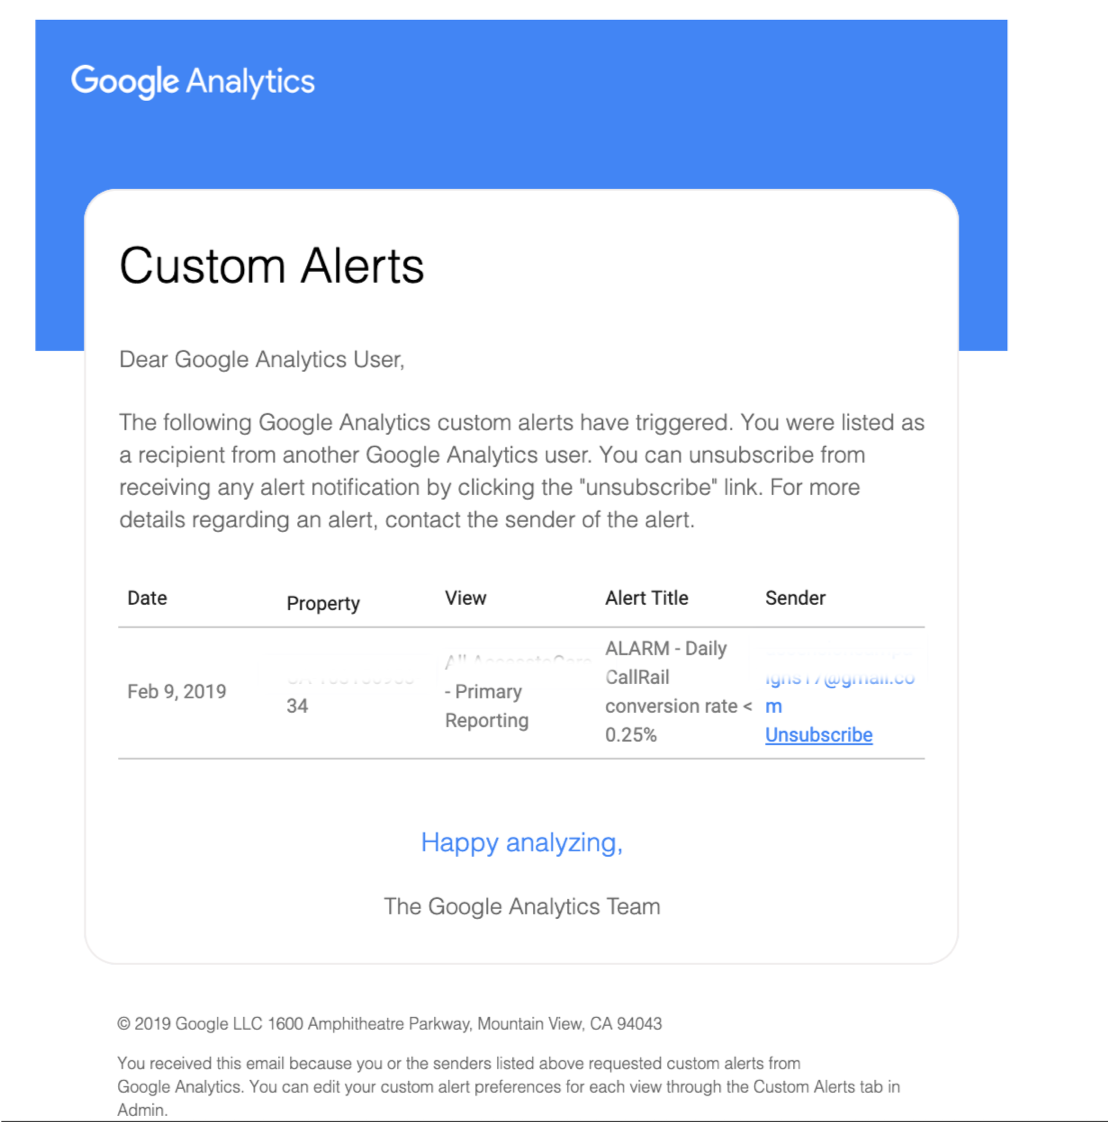 Google Analytics custom alert email example